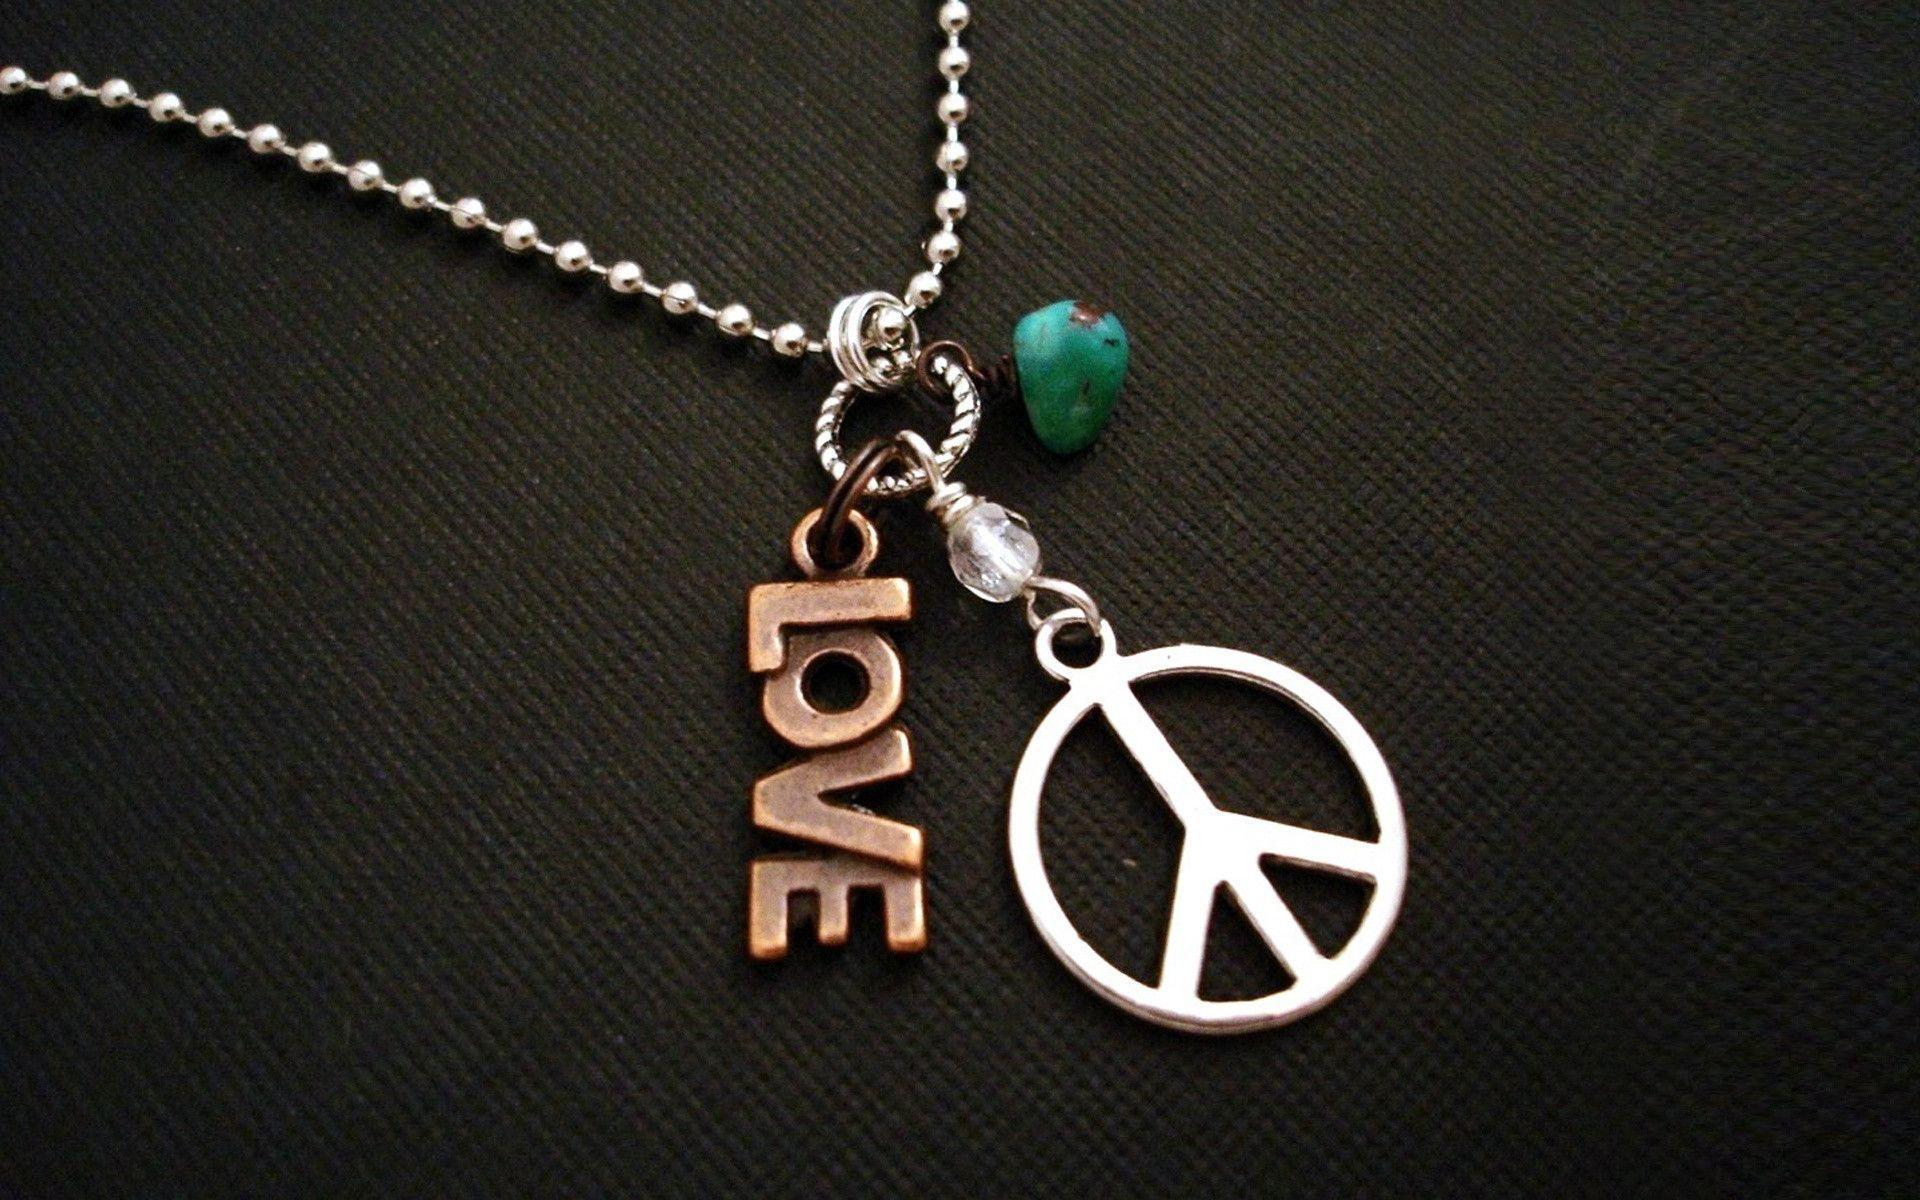 Love and peace desktop wallpapers 800x600, Love and peace